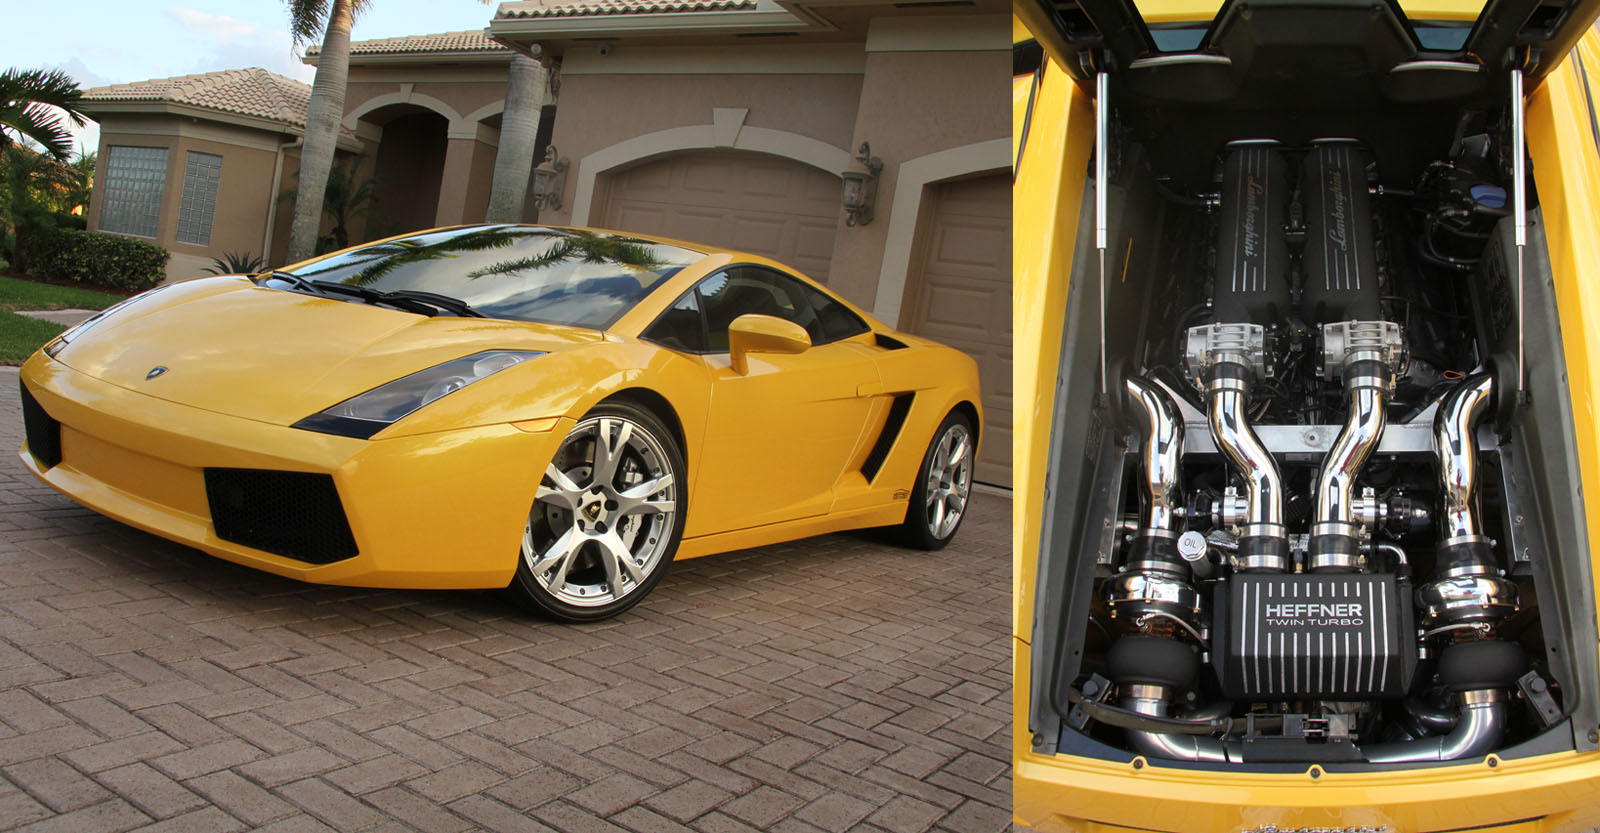 2006  Lamborghini Gallardo Twin Turbo Heffner 800TT picture, mods, upgrades